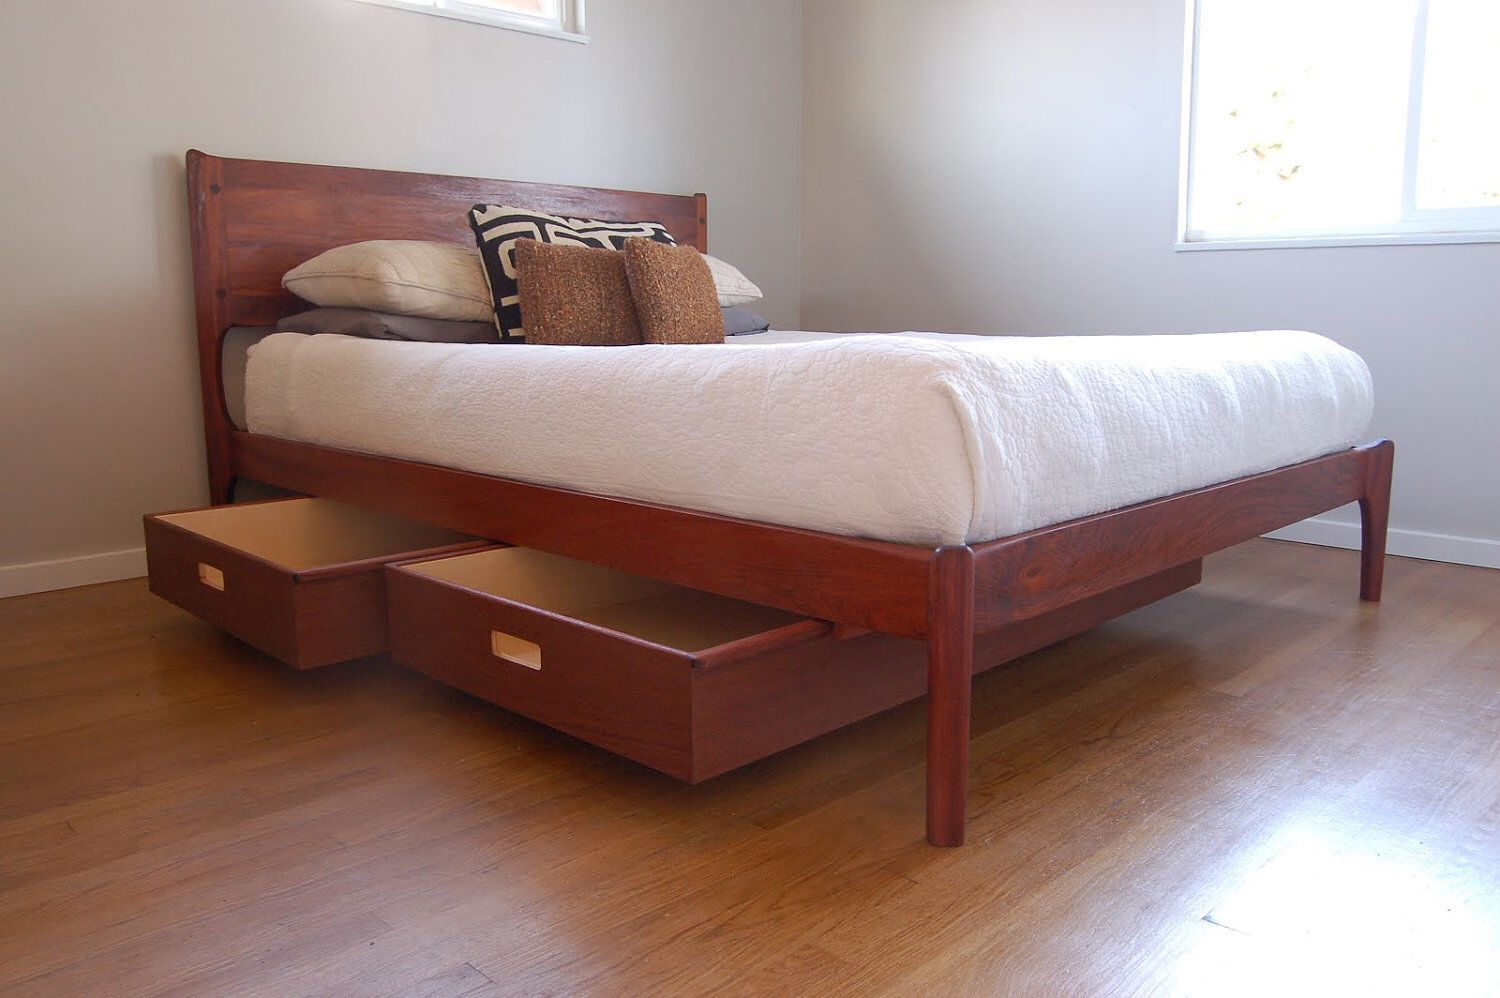 Classic Modern Bed With Storage Mid Century Danish Modern Style